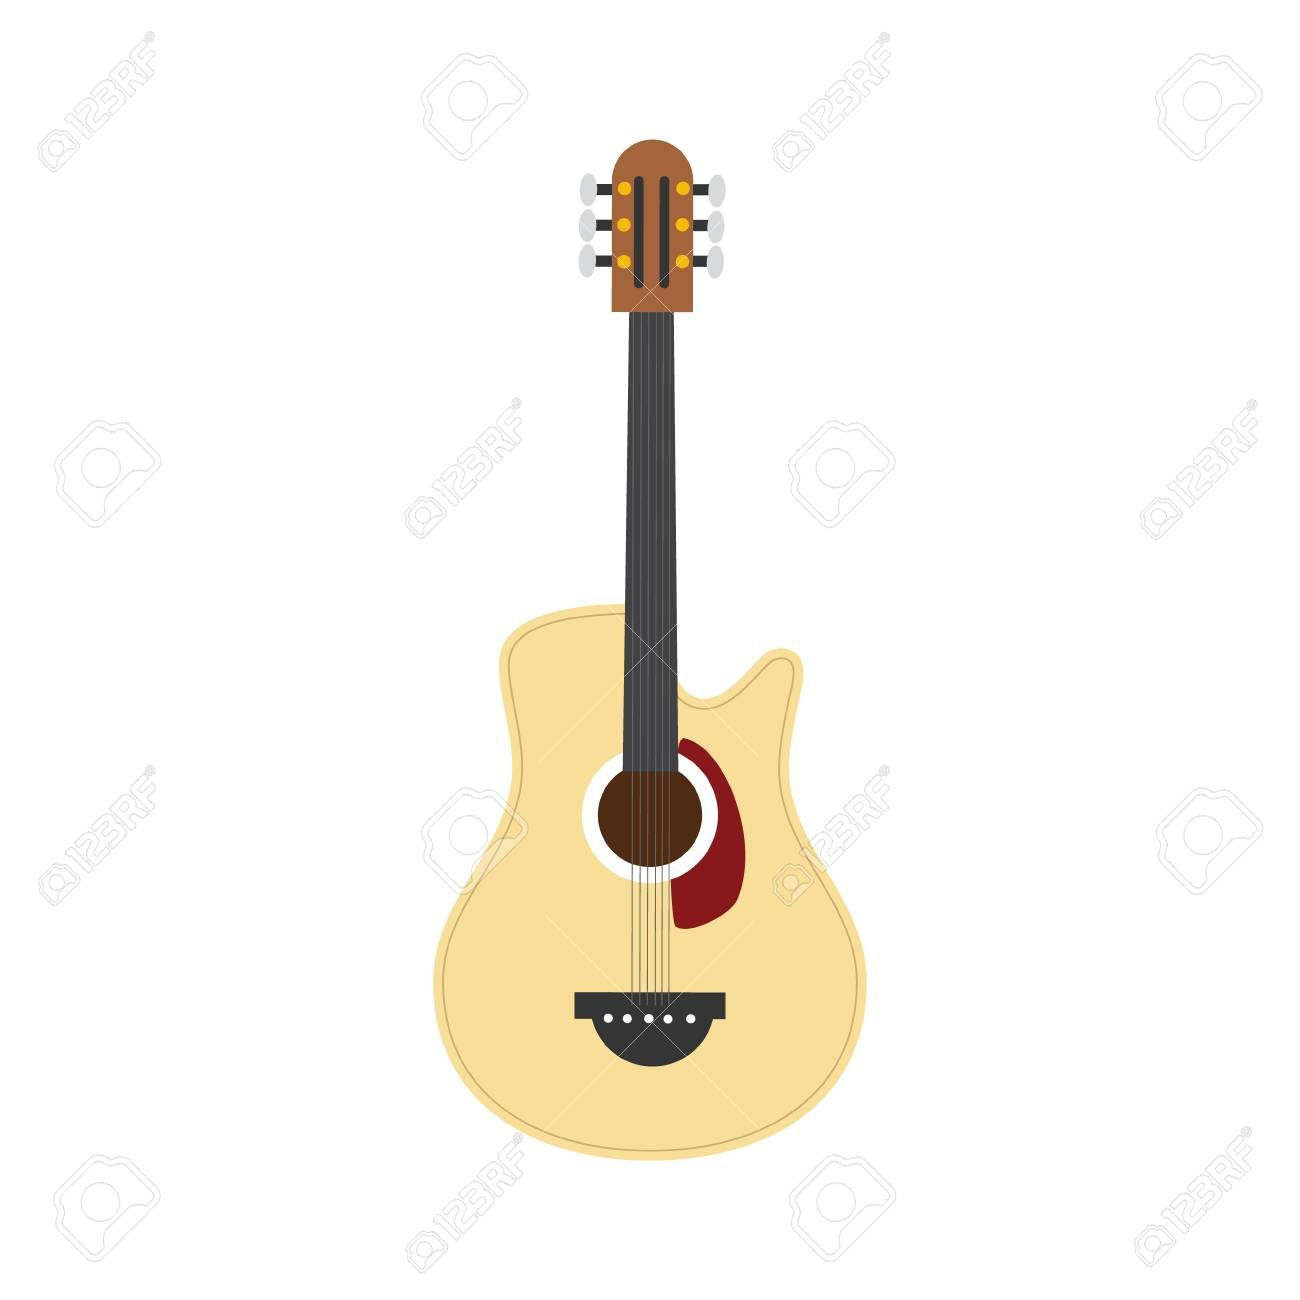 Vector Illustration Of An Acoustic Guitar In Cartoon Style Isolated On White Background Spon Aco Typography Design Layout Cartoon Styles Typography Design